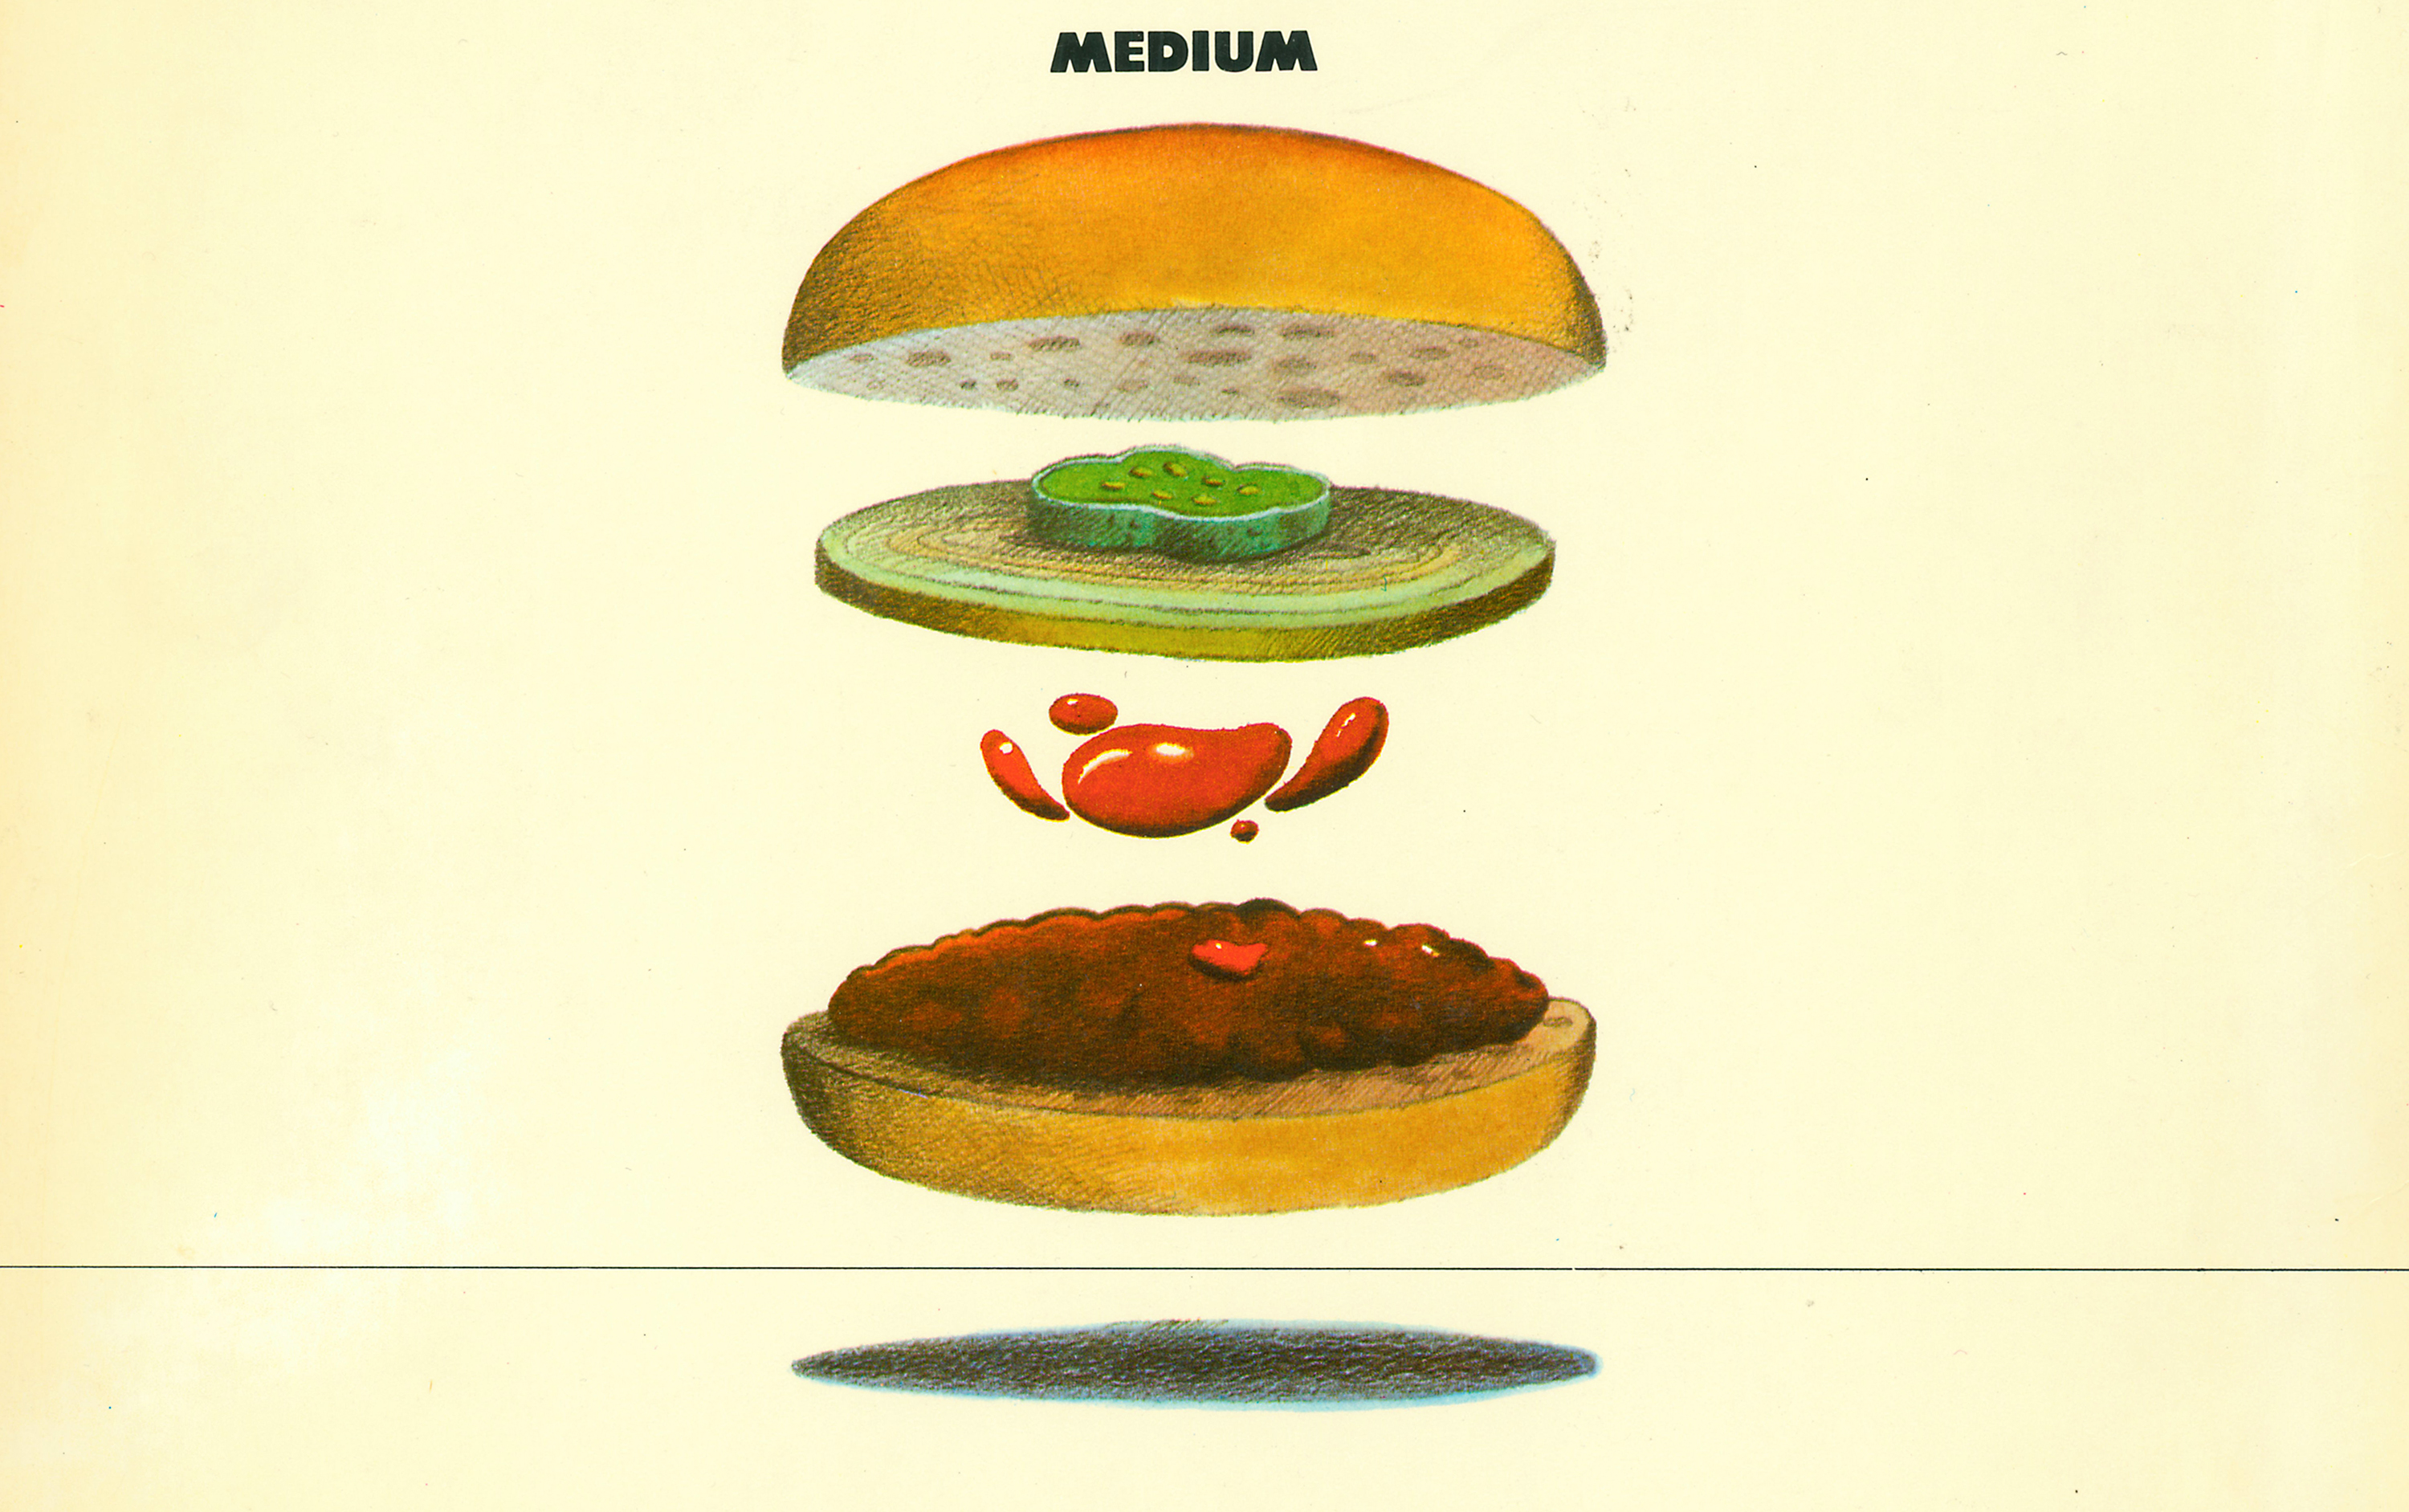 Color illustration of the components of a hamburger isolated and floating independently of each other against a yellow background.